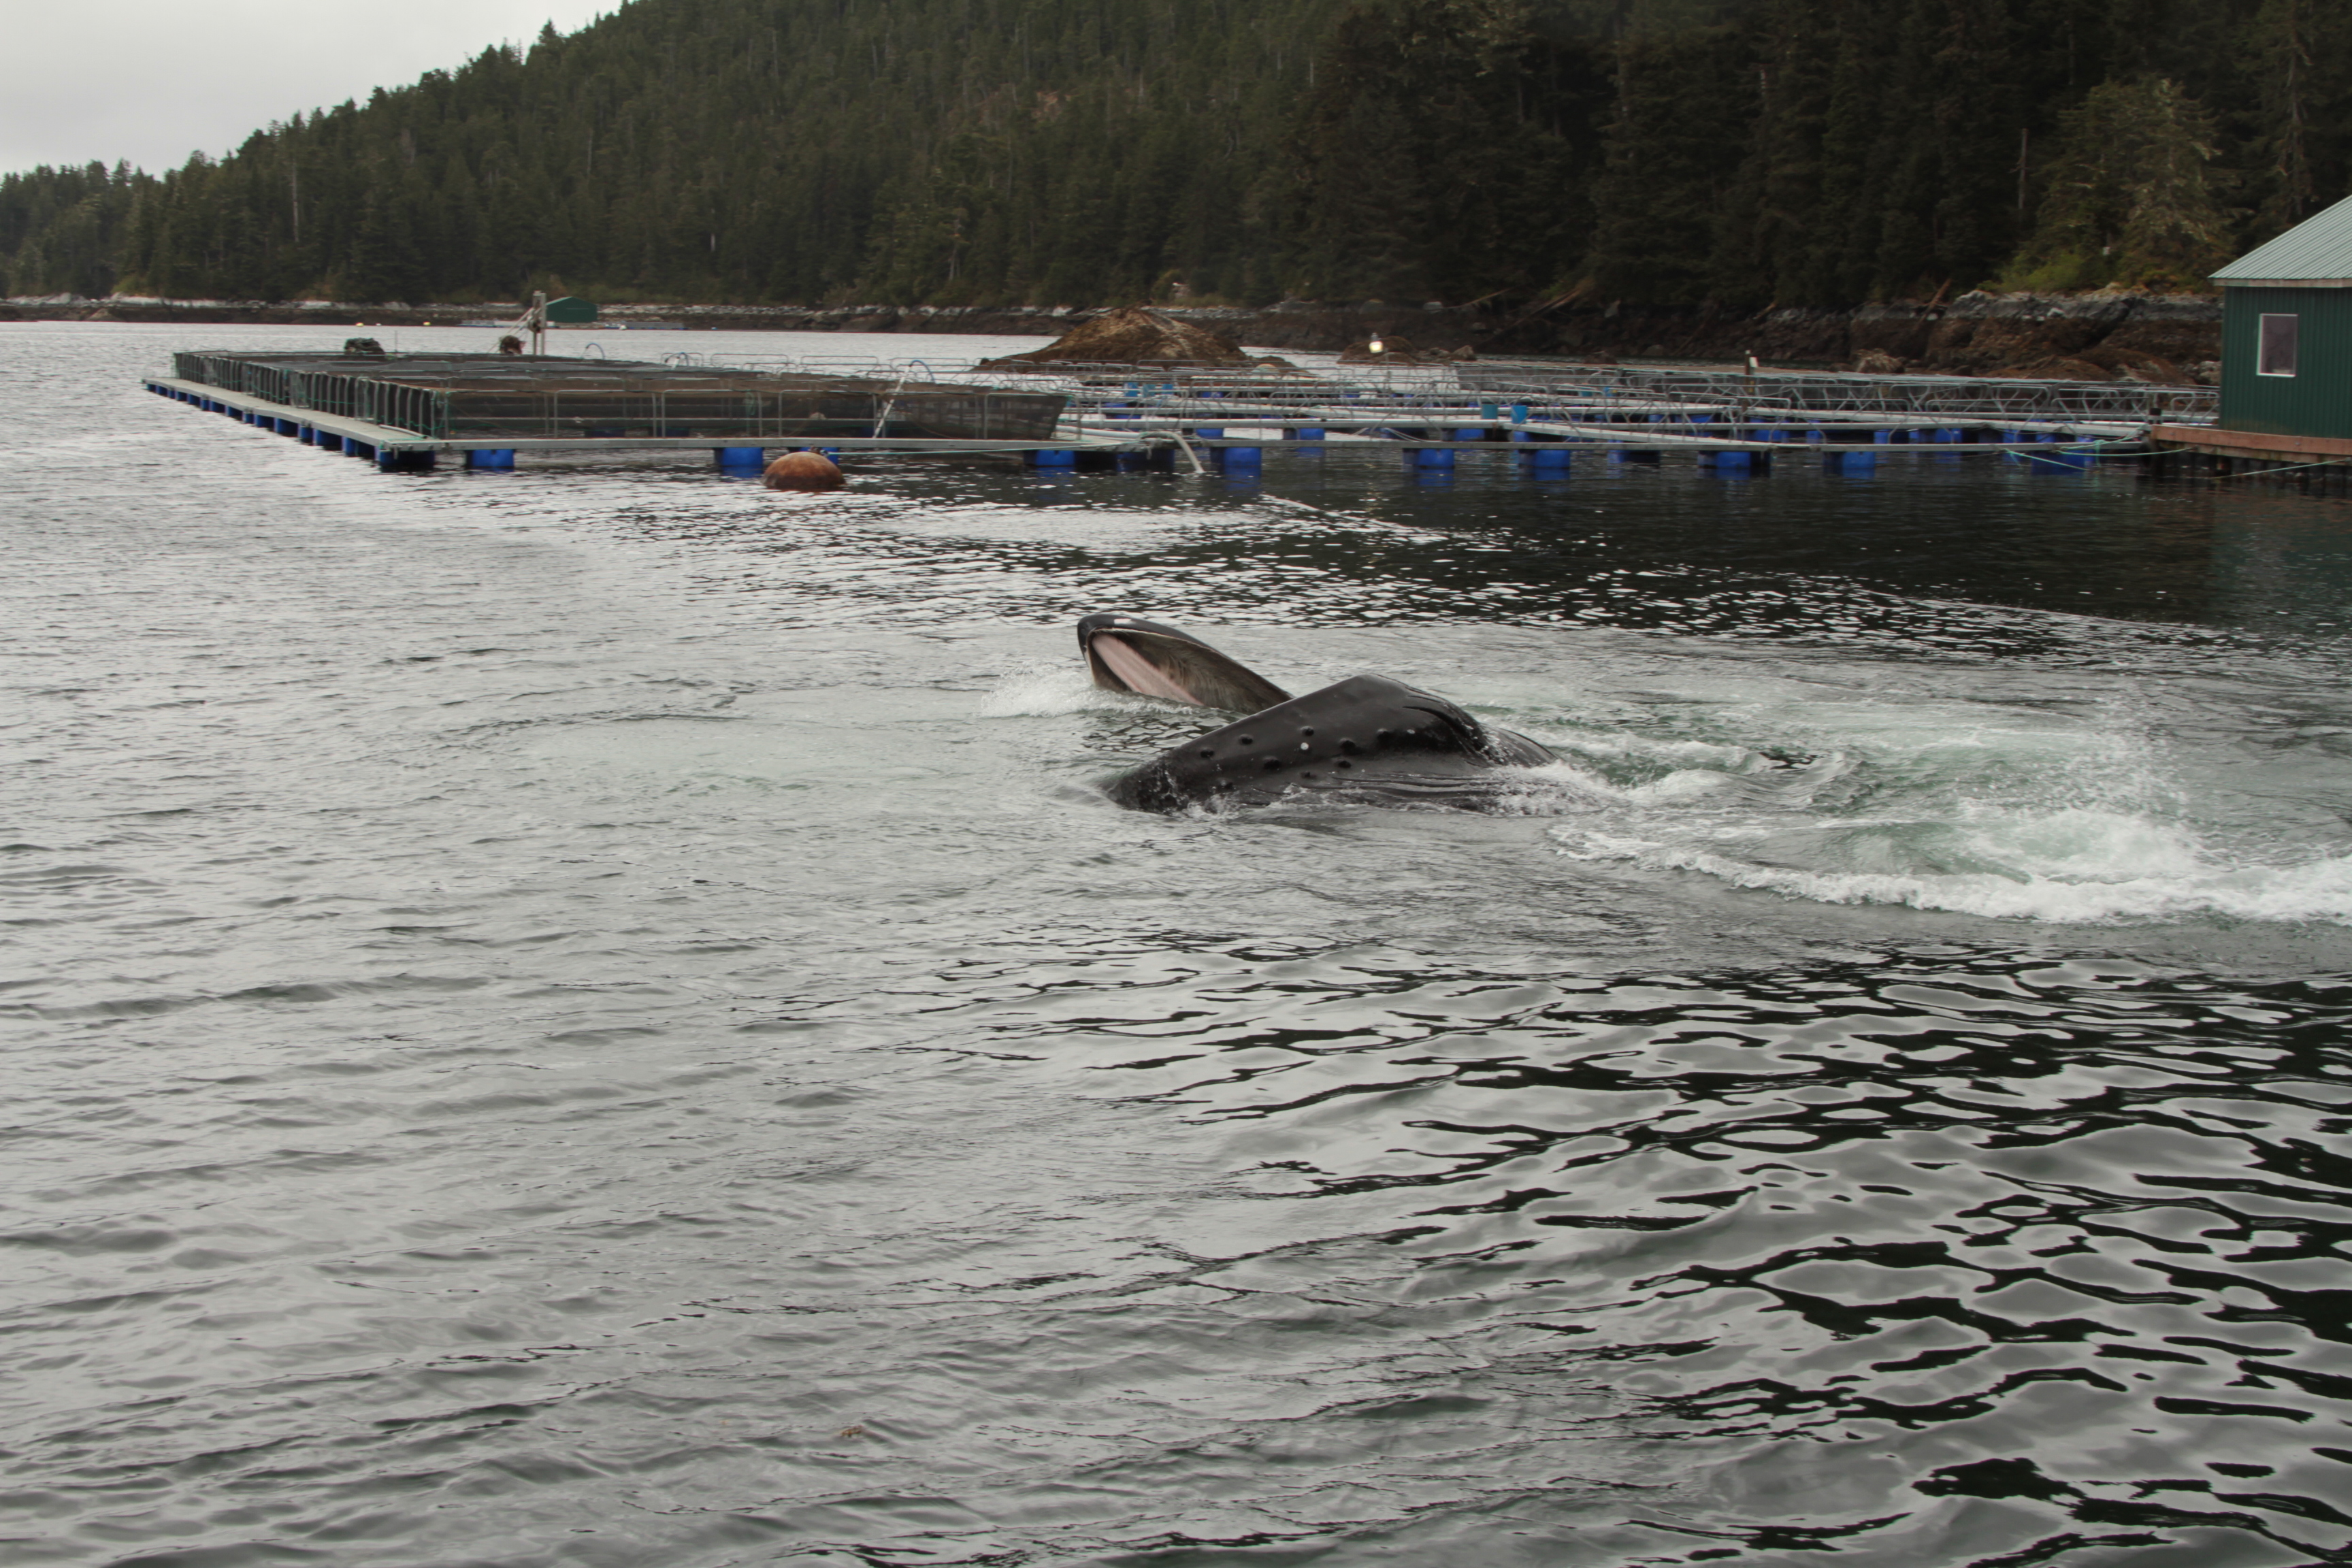 Humpback whale feeding on juvenile salmon at Hidden Falls Hatchery. Photo by Monique Anderson. NOAA Fisheries Permit 14122